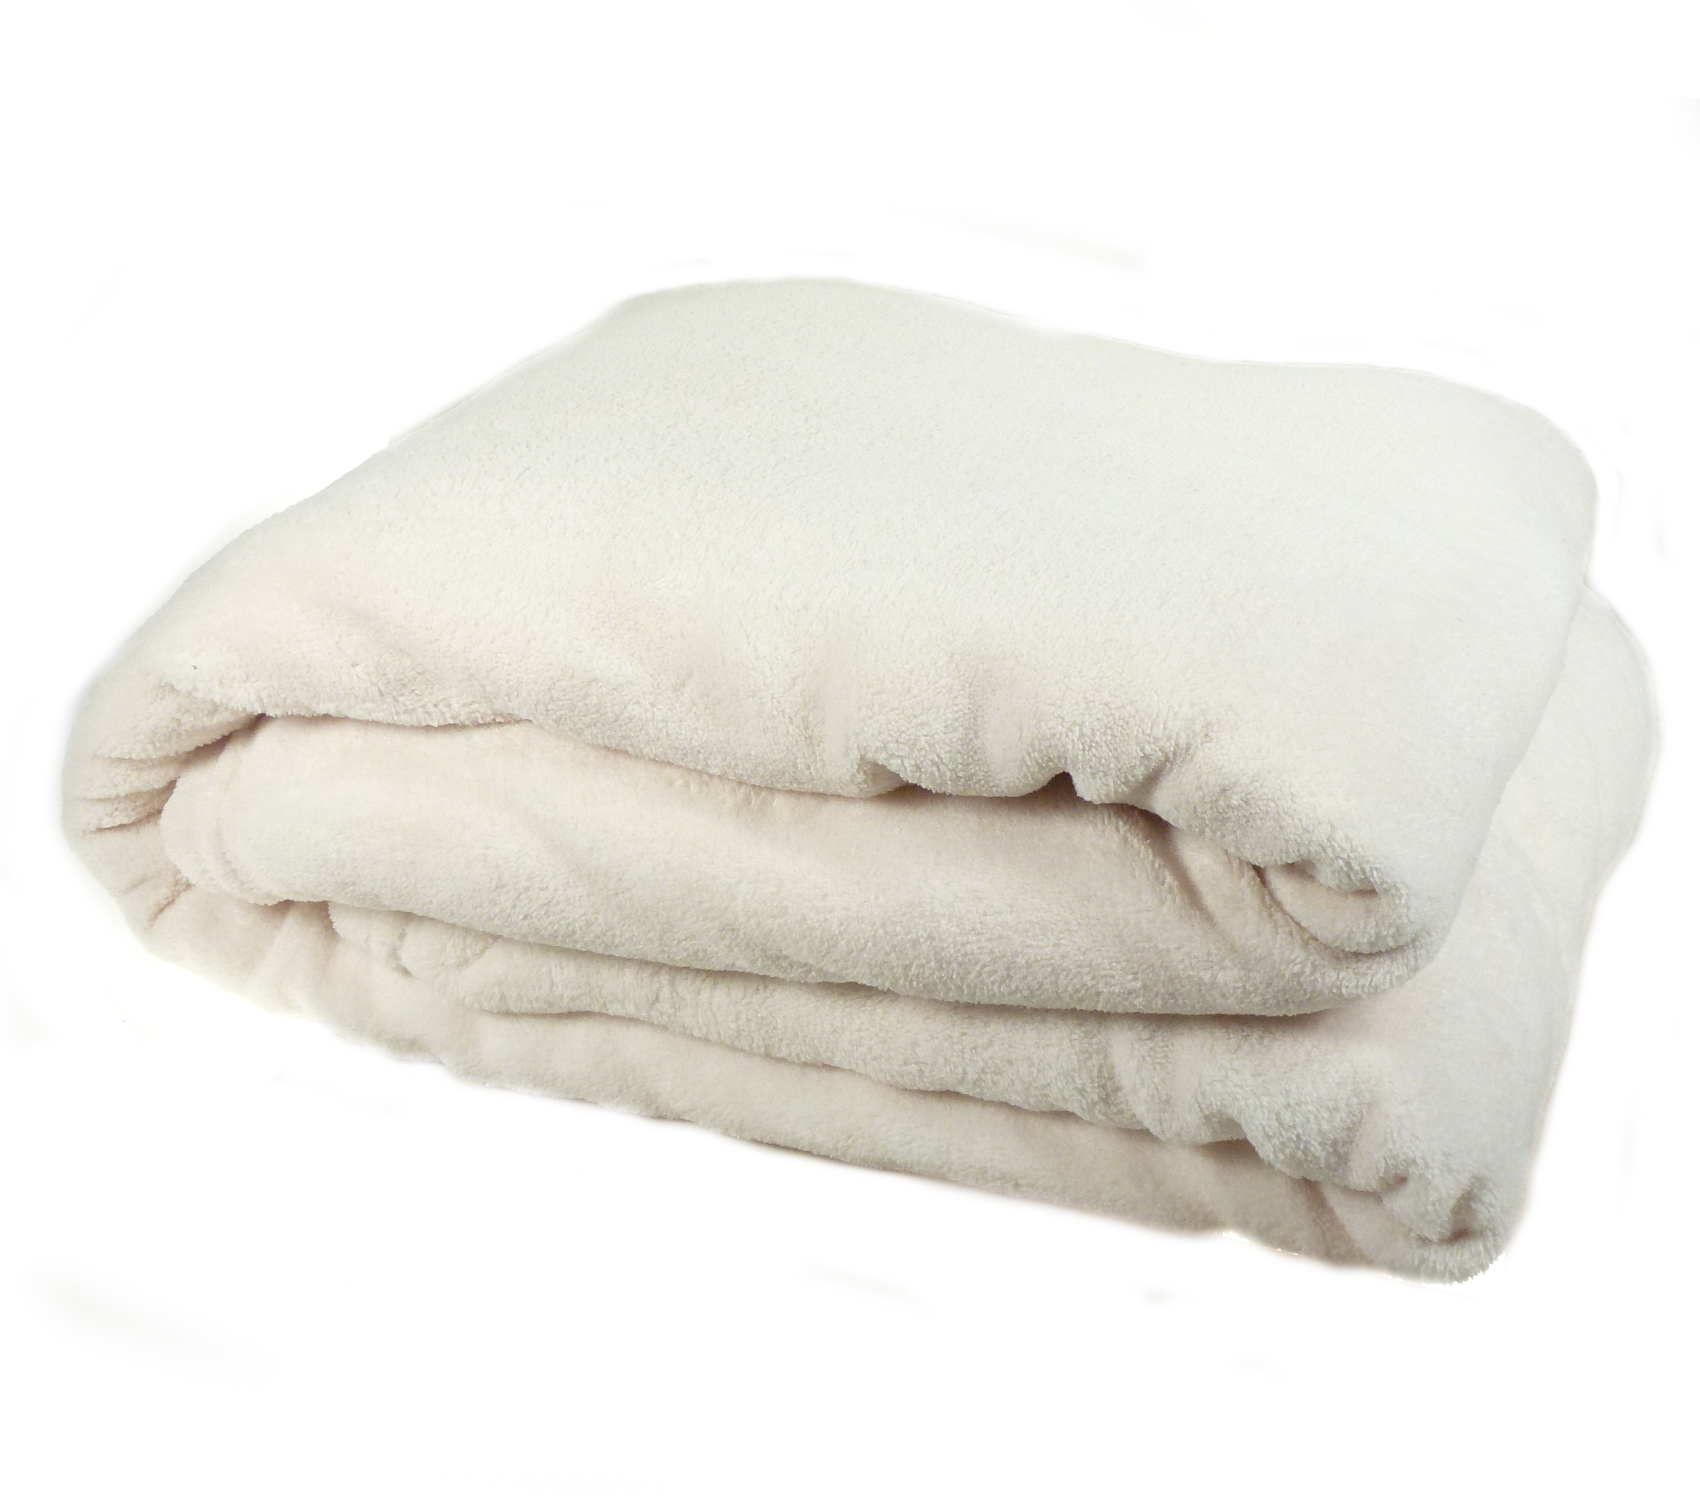 Luxury Soft Cosy Coral Fleece Throw Over Bed Sofa Home  : soft fleece coral throw blanket cream from www.ebay.co.uk size 1700 x 1500 jpeg 541kB